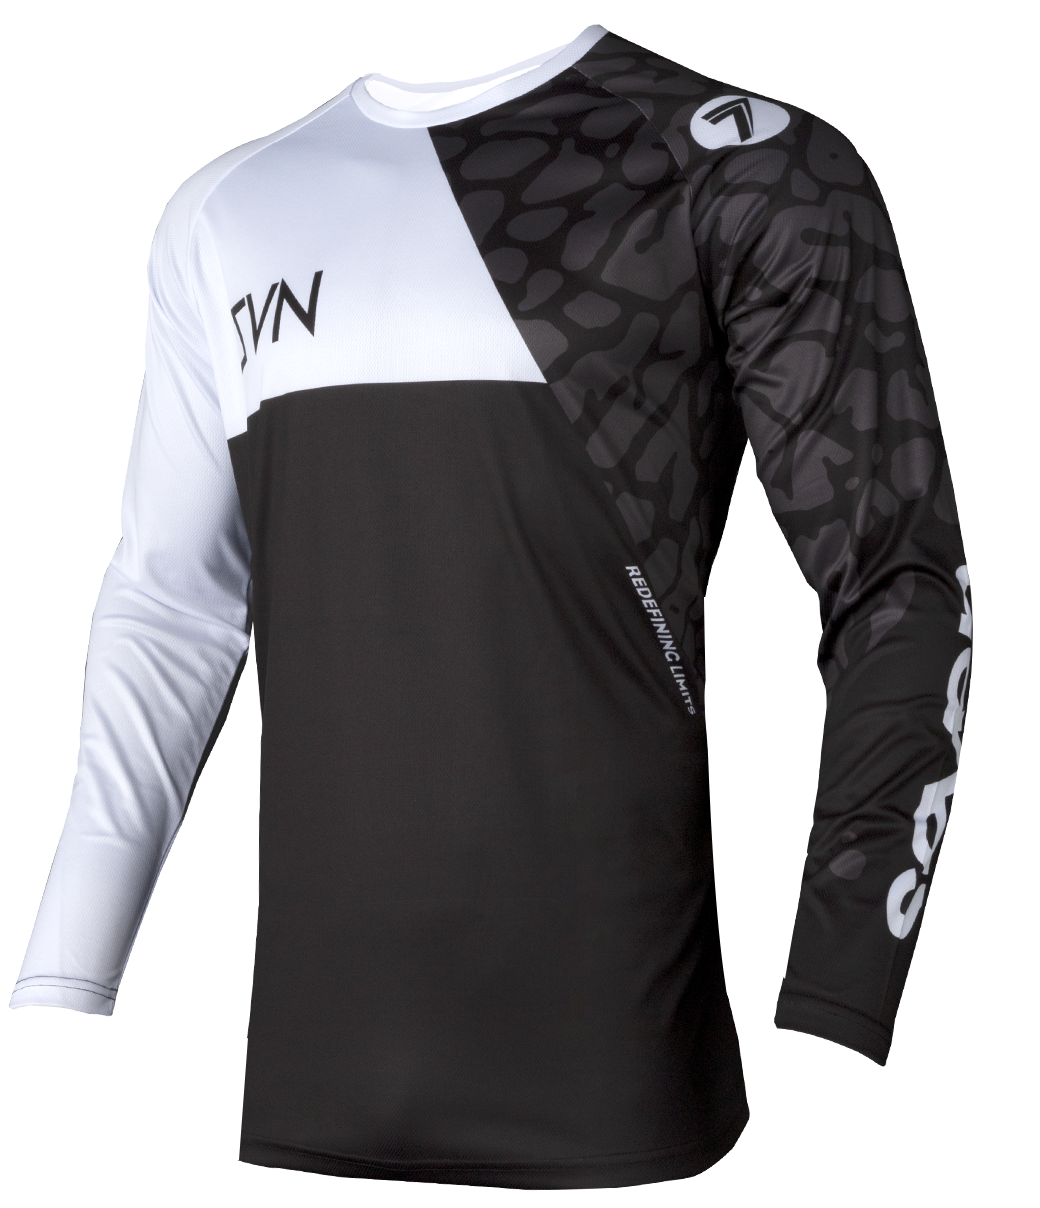 Youth Vox Paragon Jersey- Black